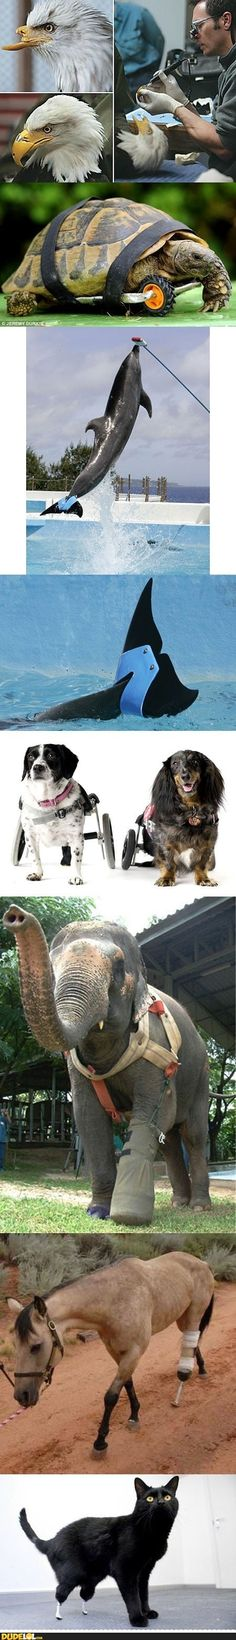 8 Cutest Animals That Live Strong and Happy Because There Were People Who Cared! Restore Faith in Humanity!